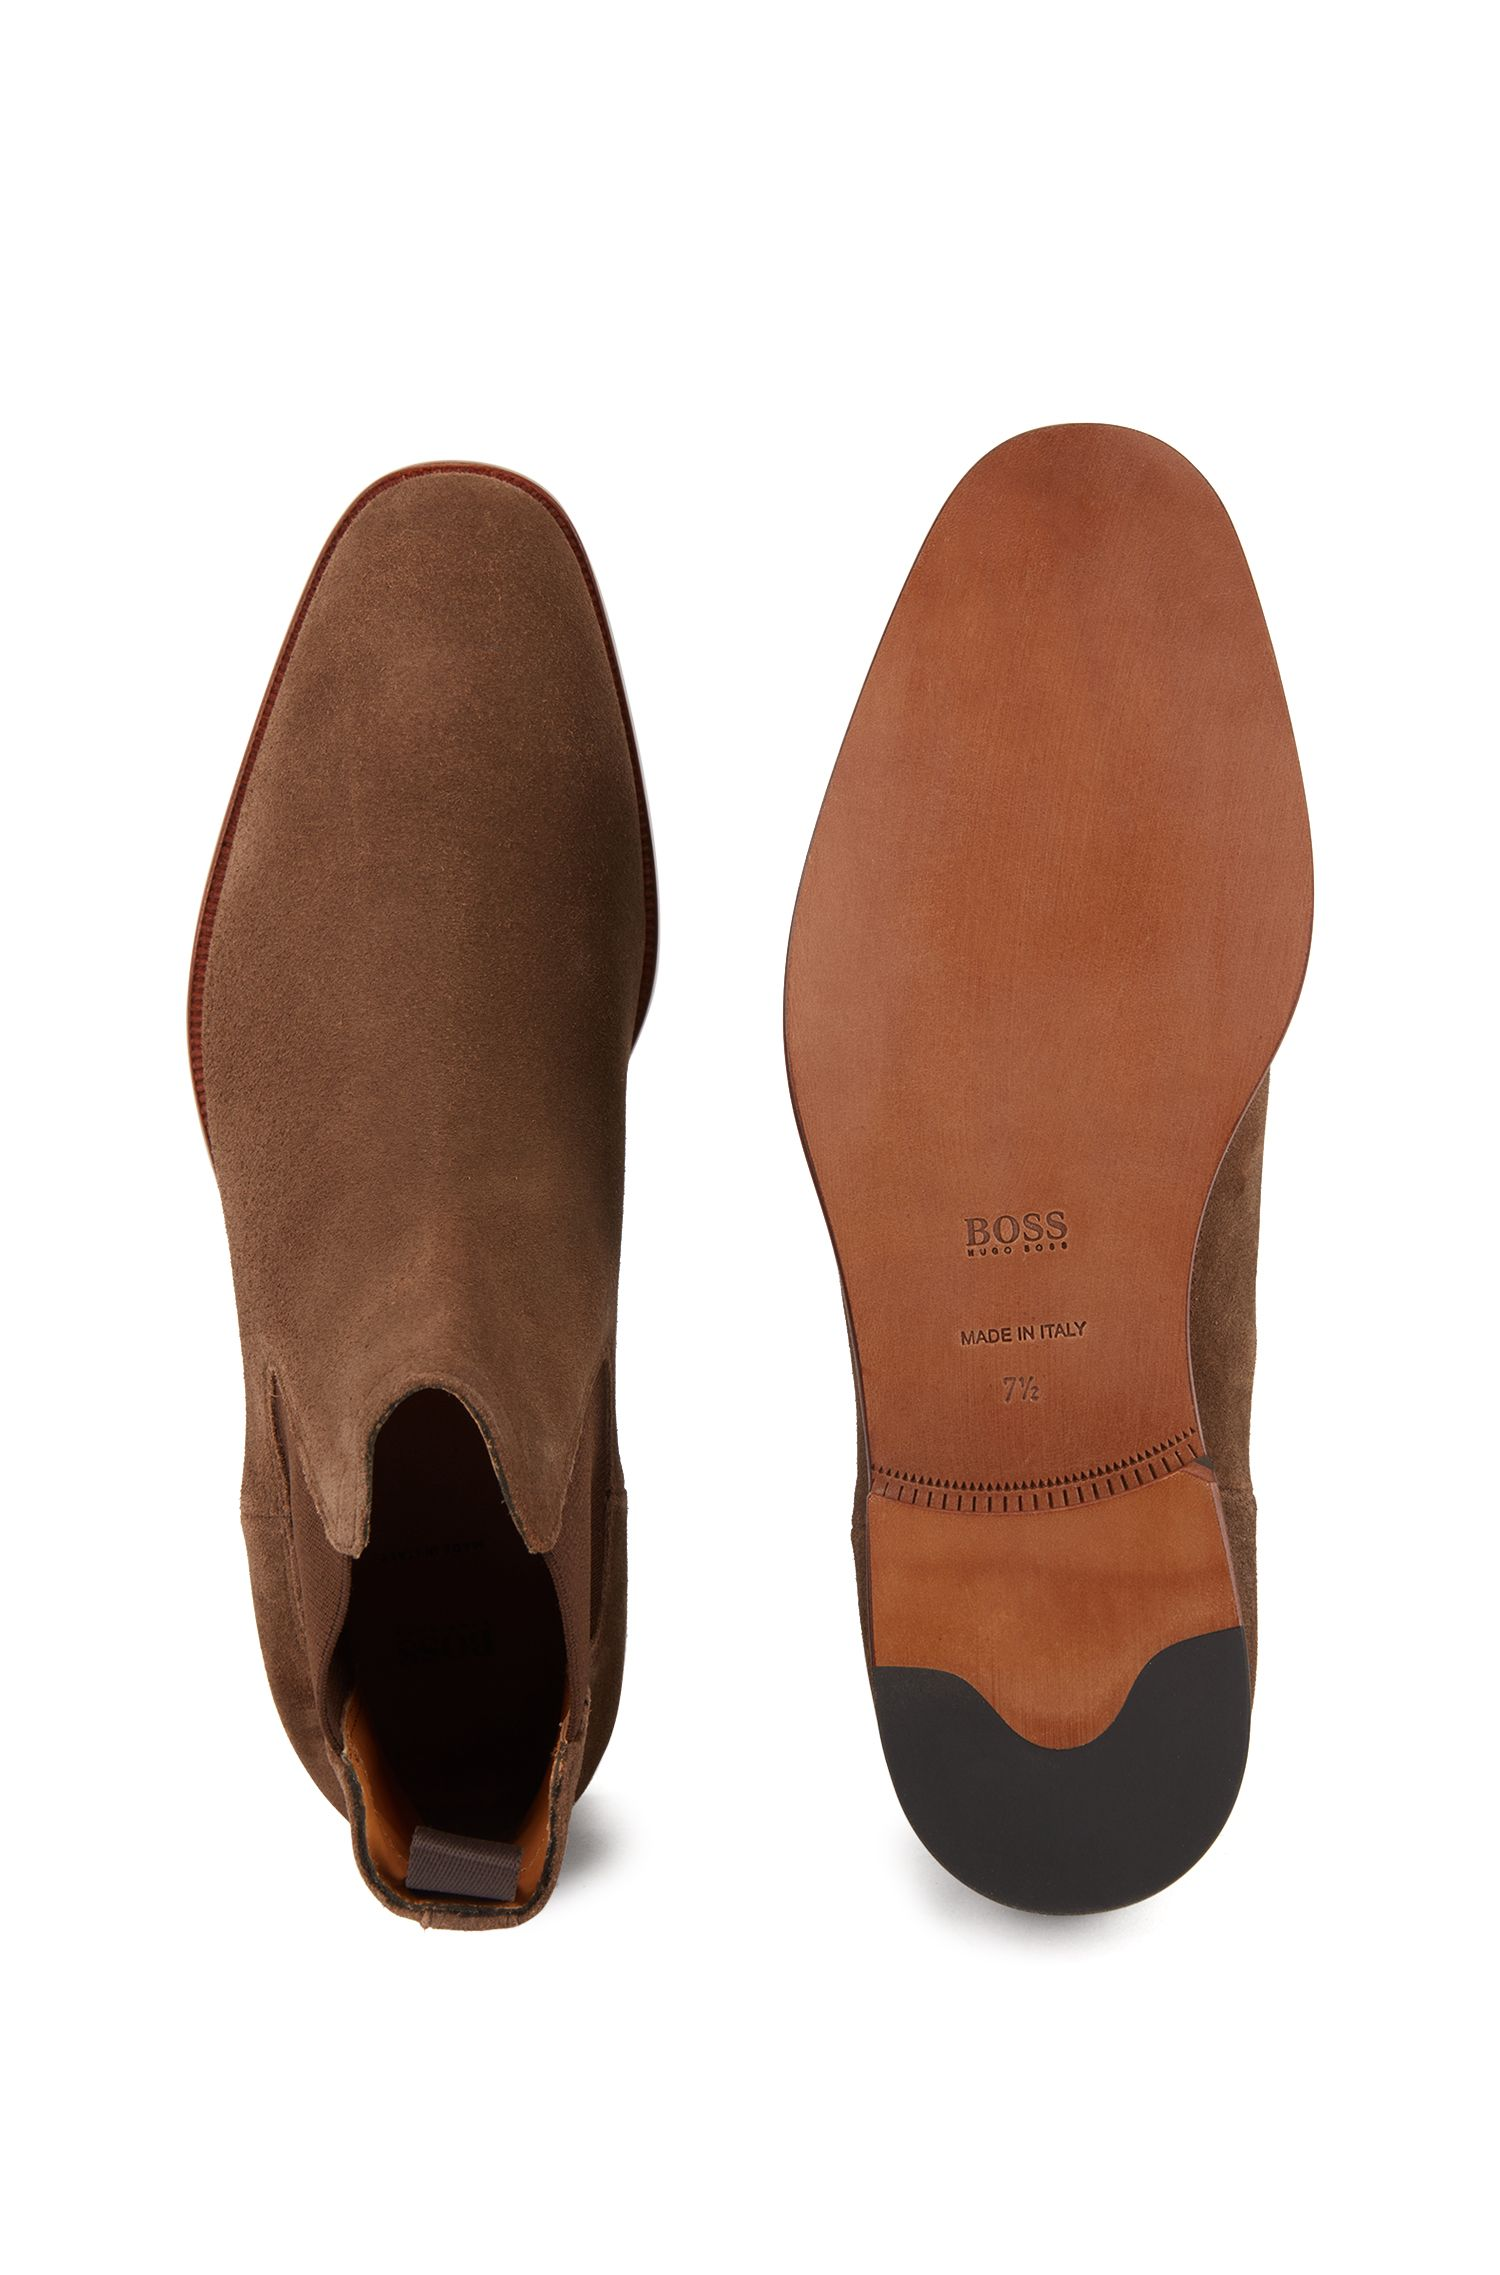 Italian-made Chelsea boots in soft suede